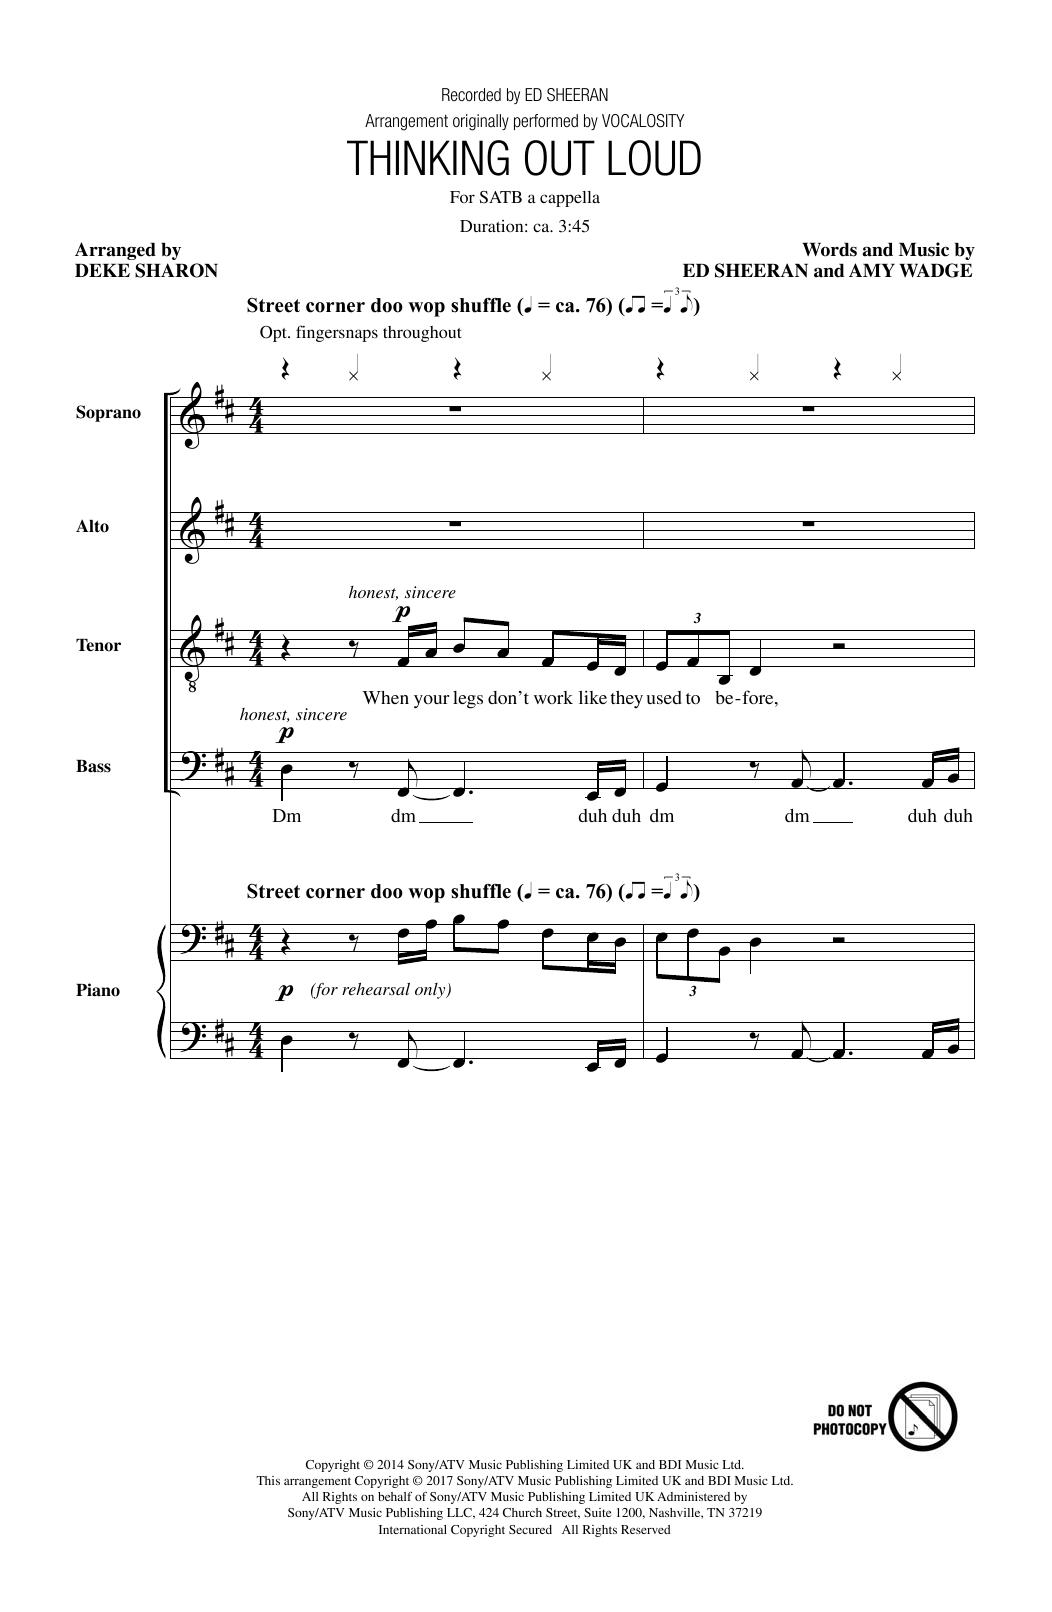 Ed Sheeran Thinking Out Loud (arr. Deke Sharon) sheet music notes and chords. Download Printable PDF.